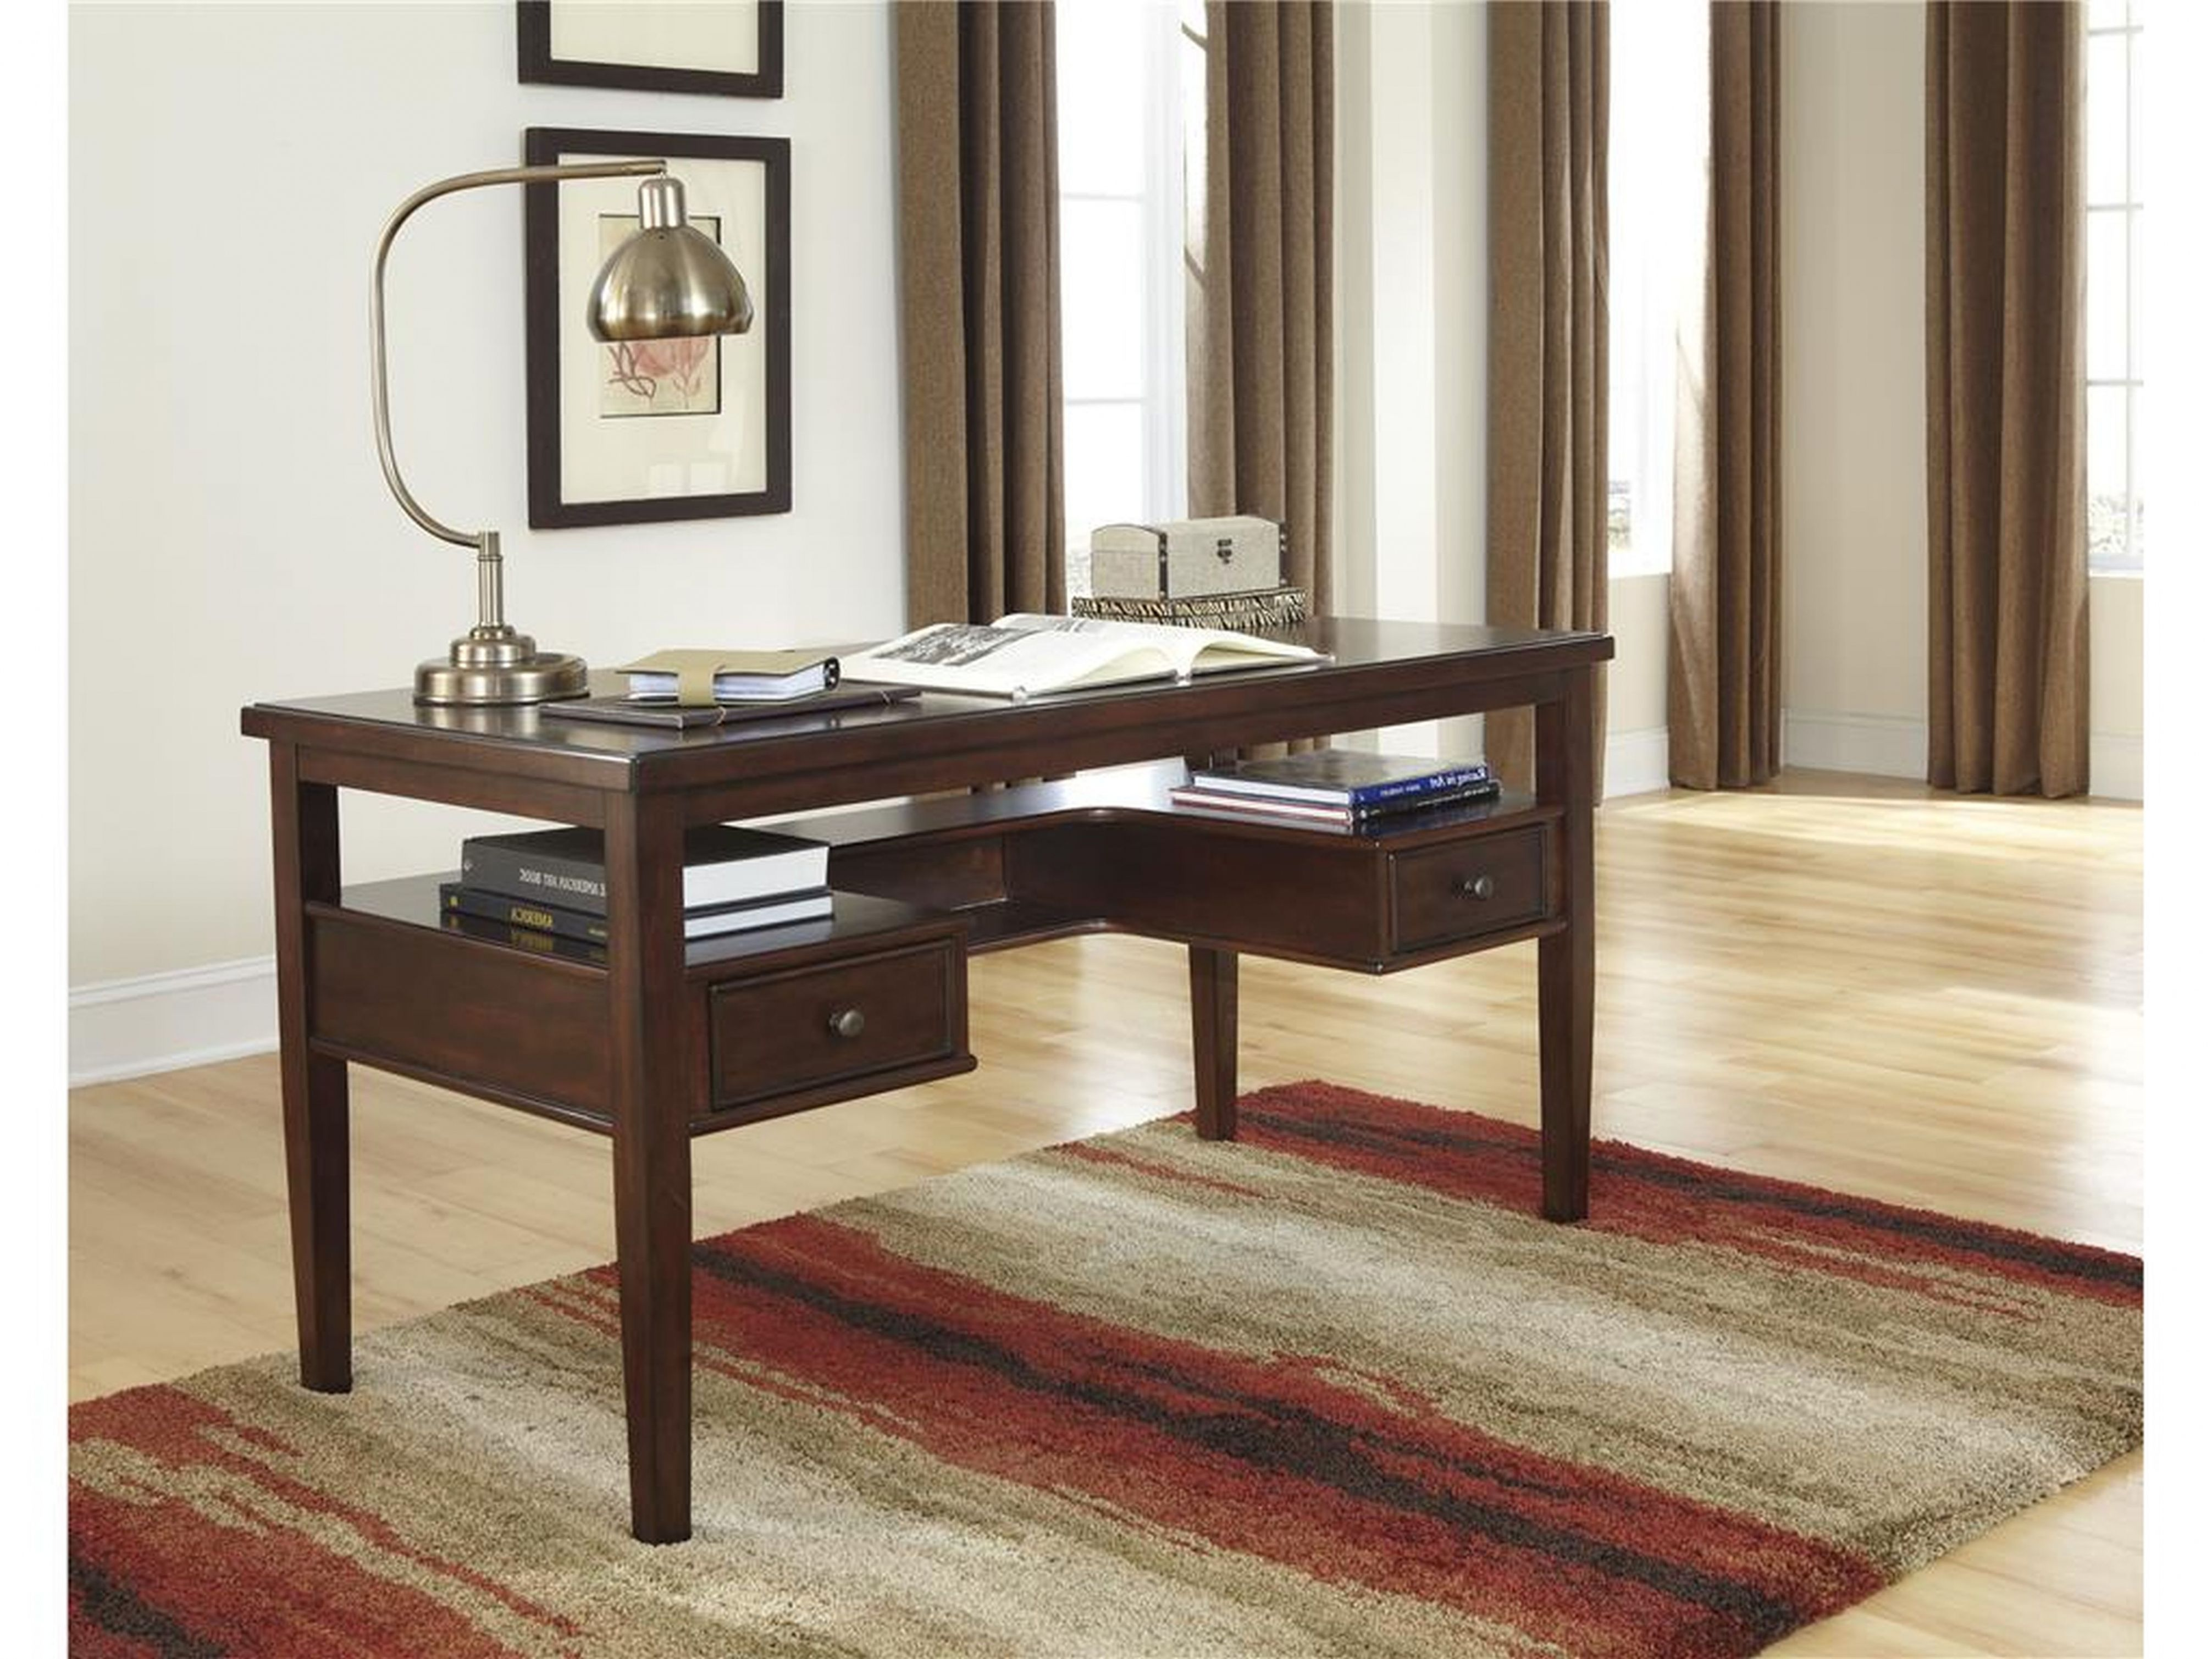 inexpensive home office furniture. Discount Home Office Desks - Living Room Table Sets Cheap Check More At Http:/ Inexpensive Furniture D